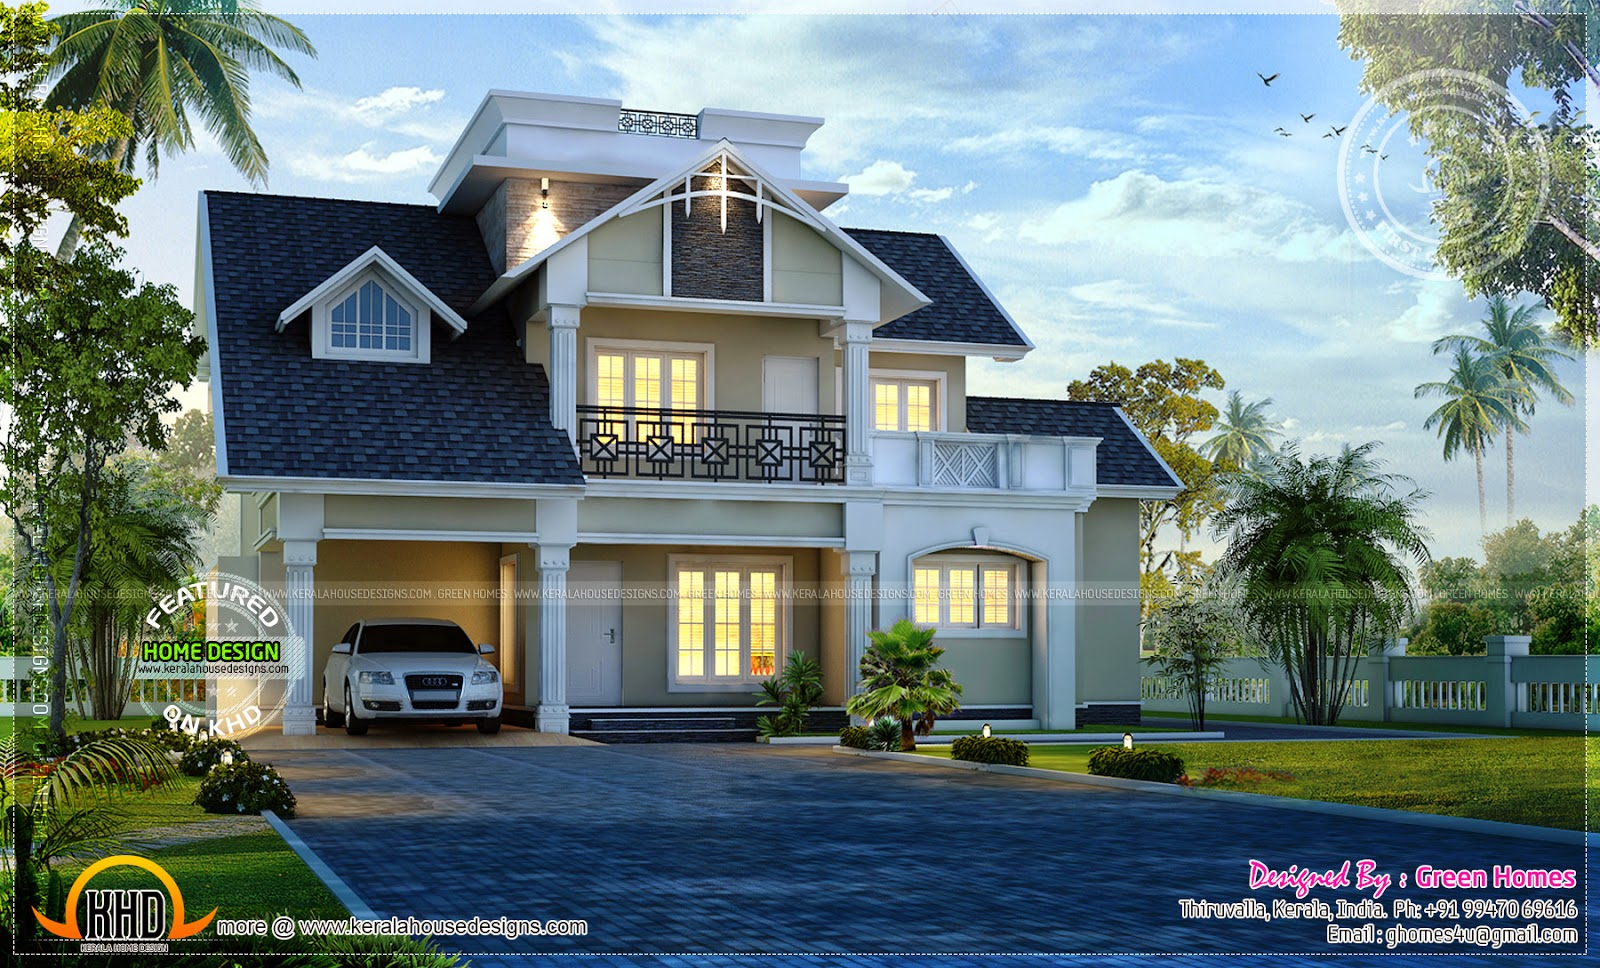 Modern house exterior design in india front design for Home designs com